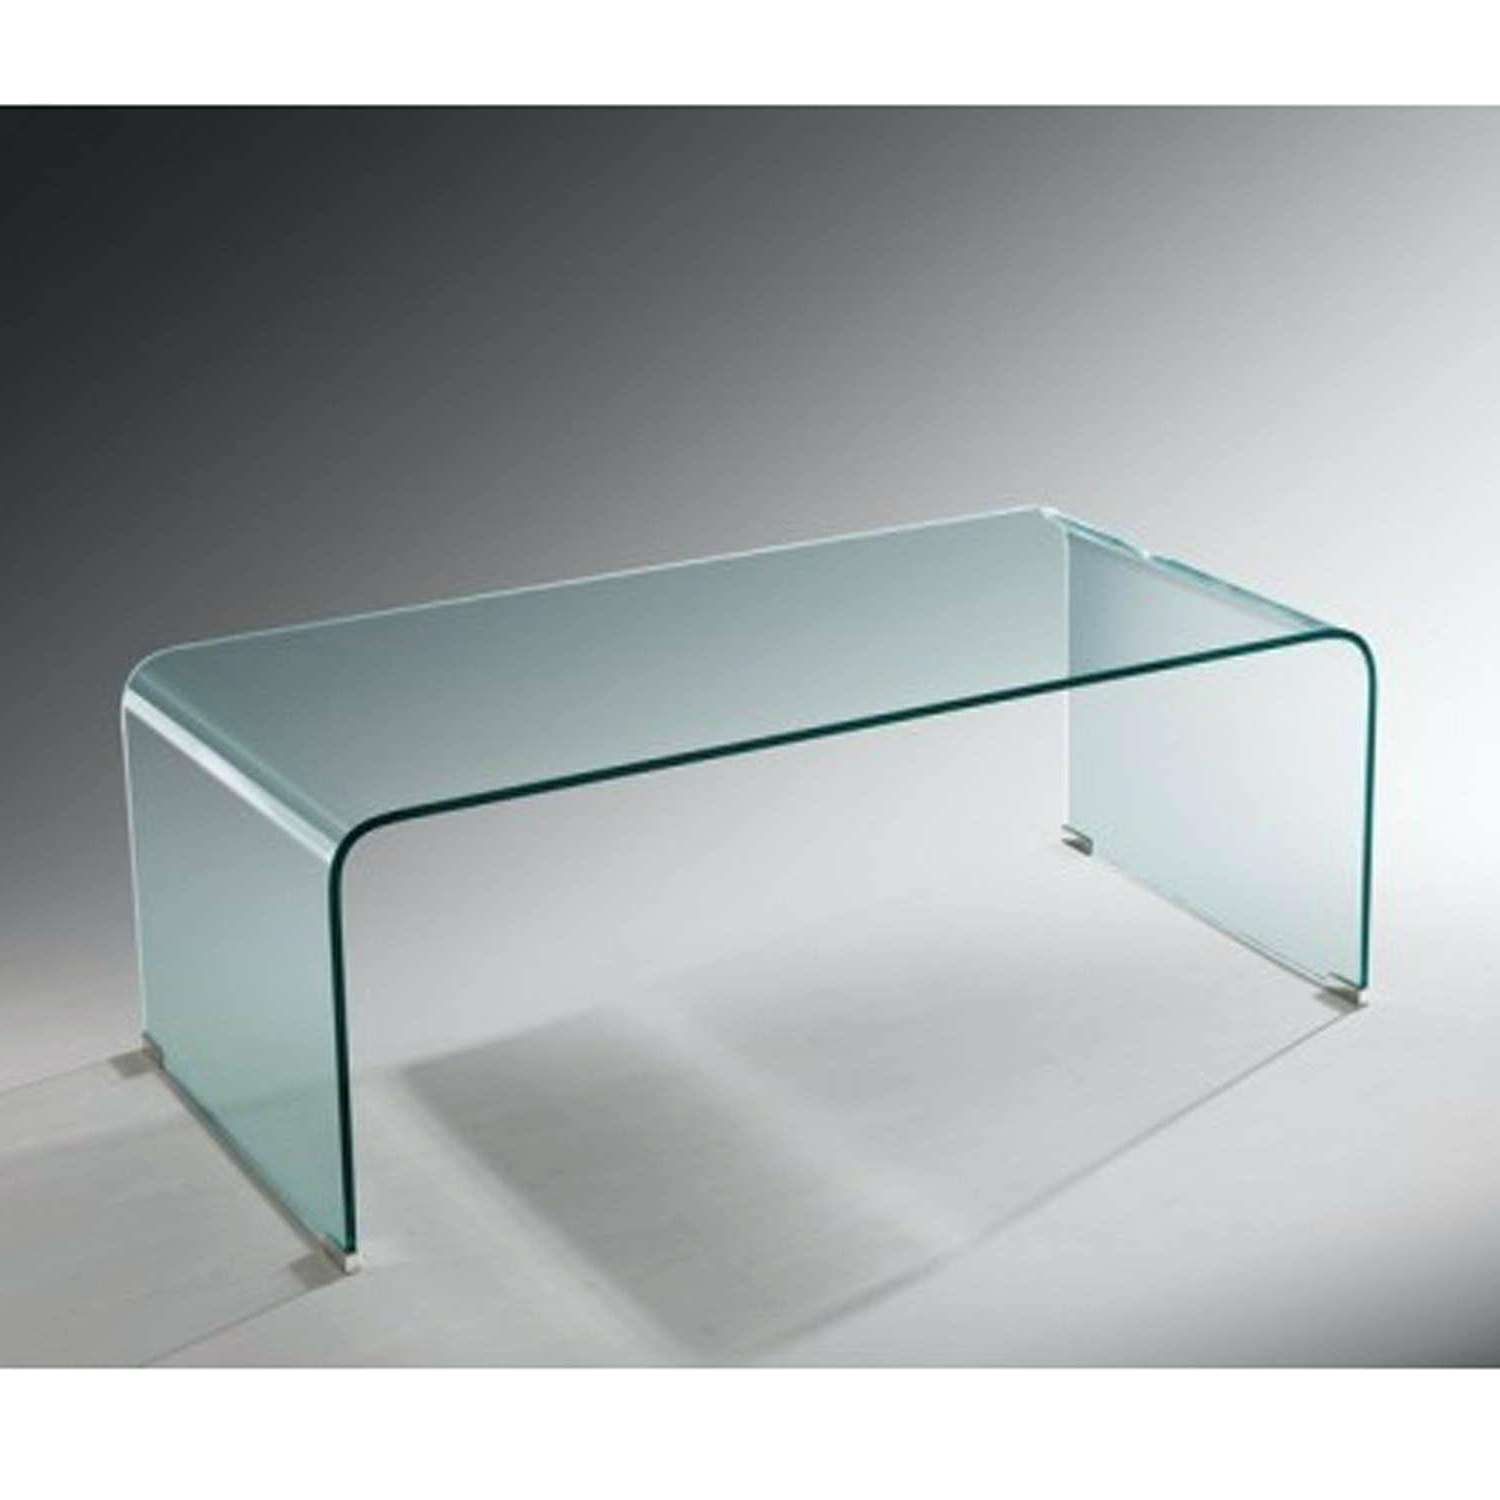 Coffee Tables : Clear Acrylic Coffee Table Amazon Plastic Cover Within Most Up To Date Perspex Coffee Table (Gallery 20 of 20)